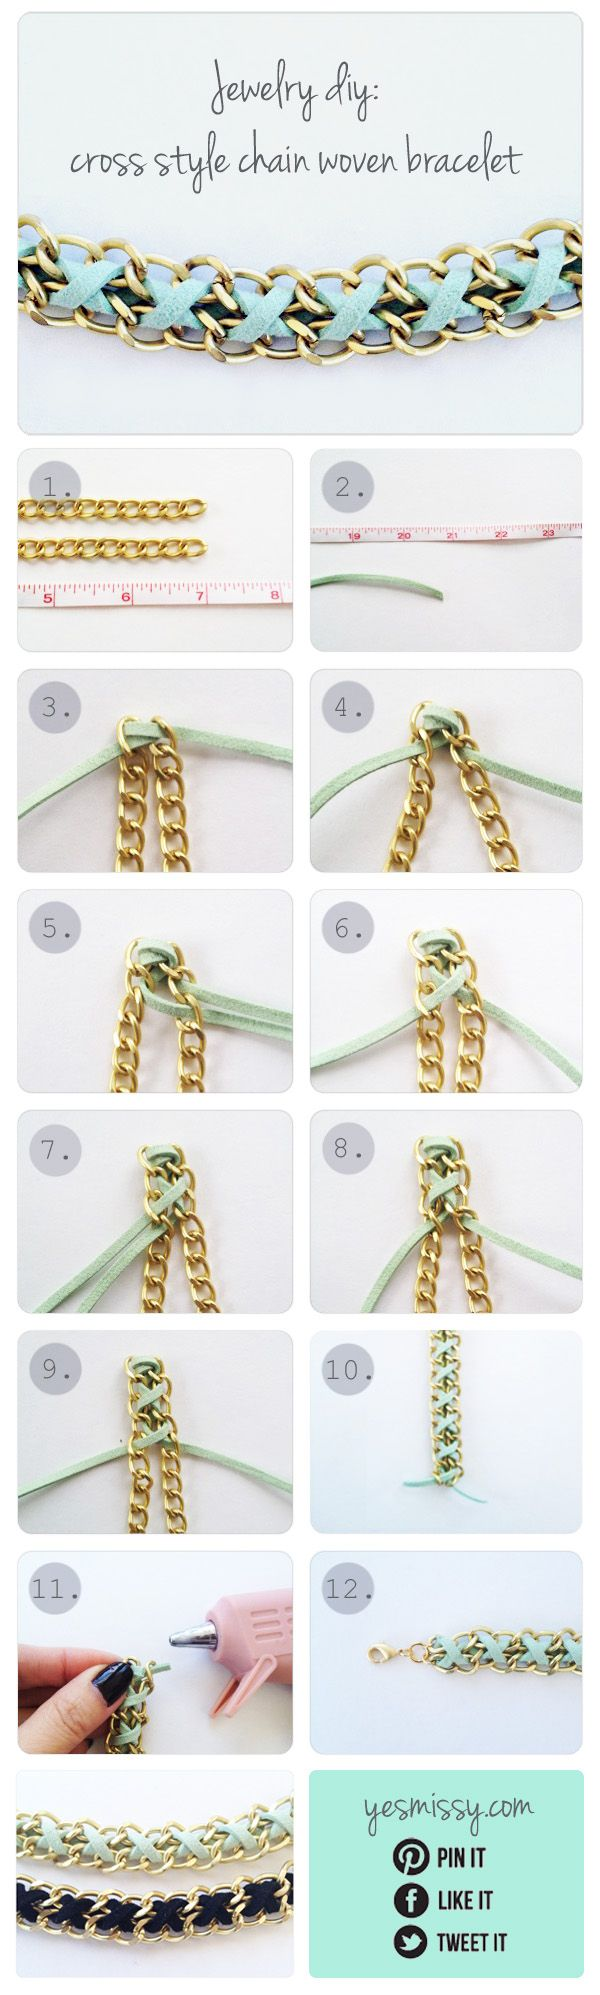 DIY Bracelet - Tutorial for chain and suede bracelet